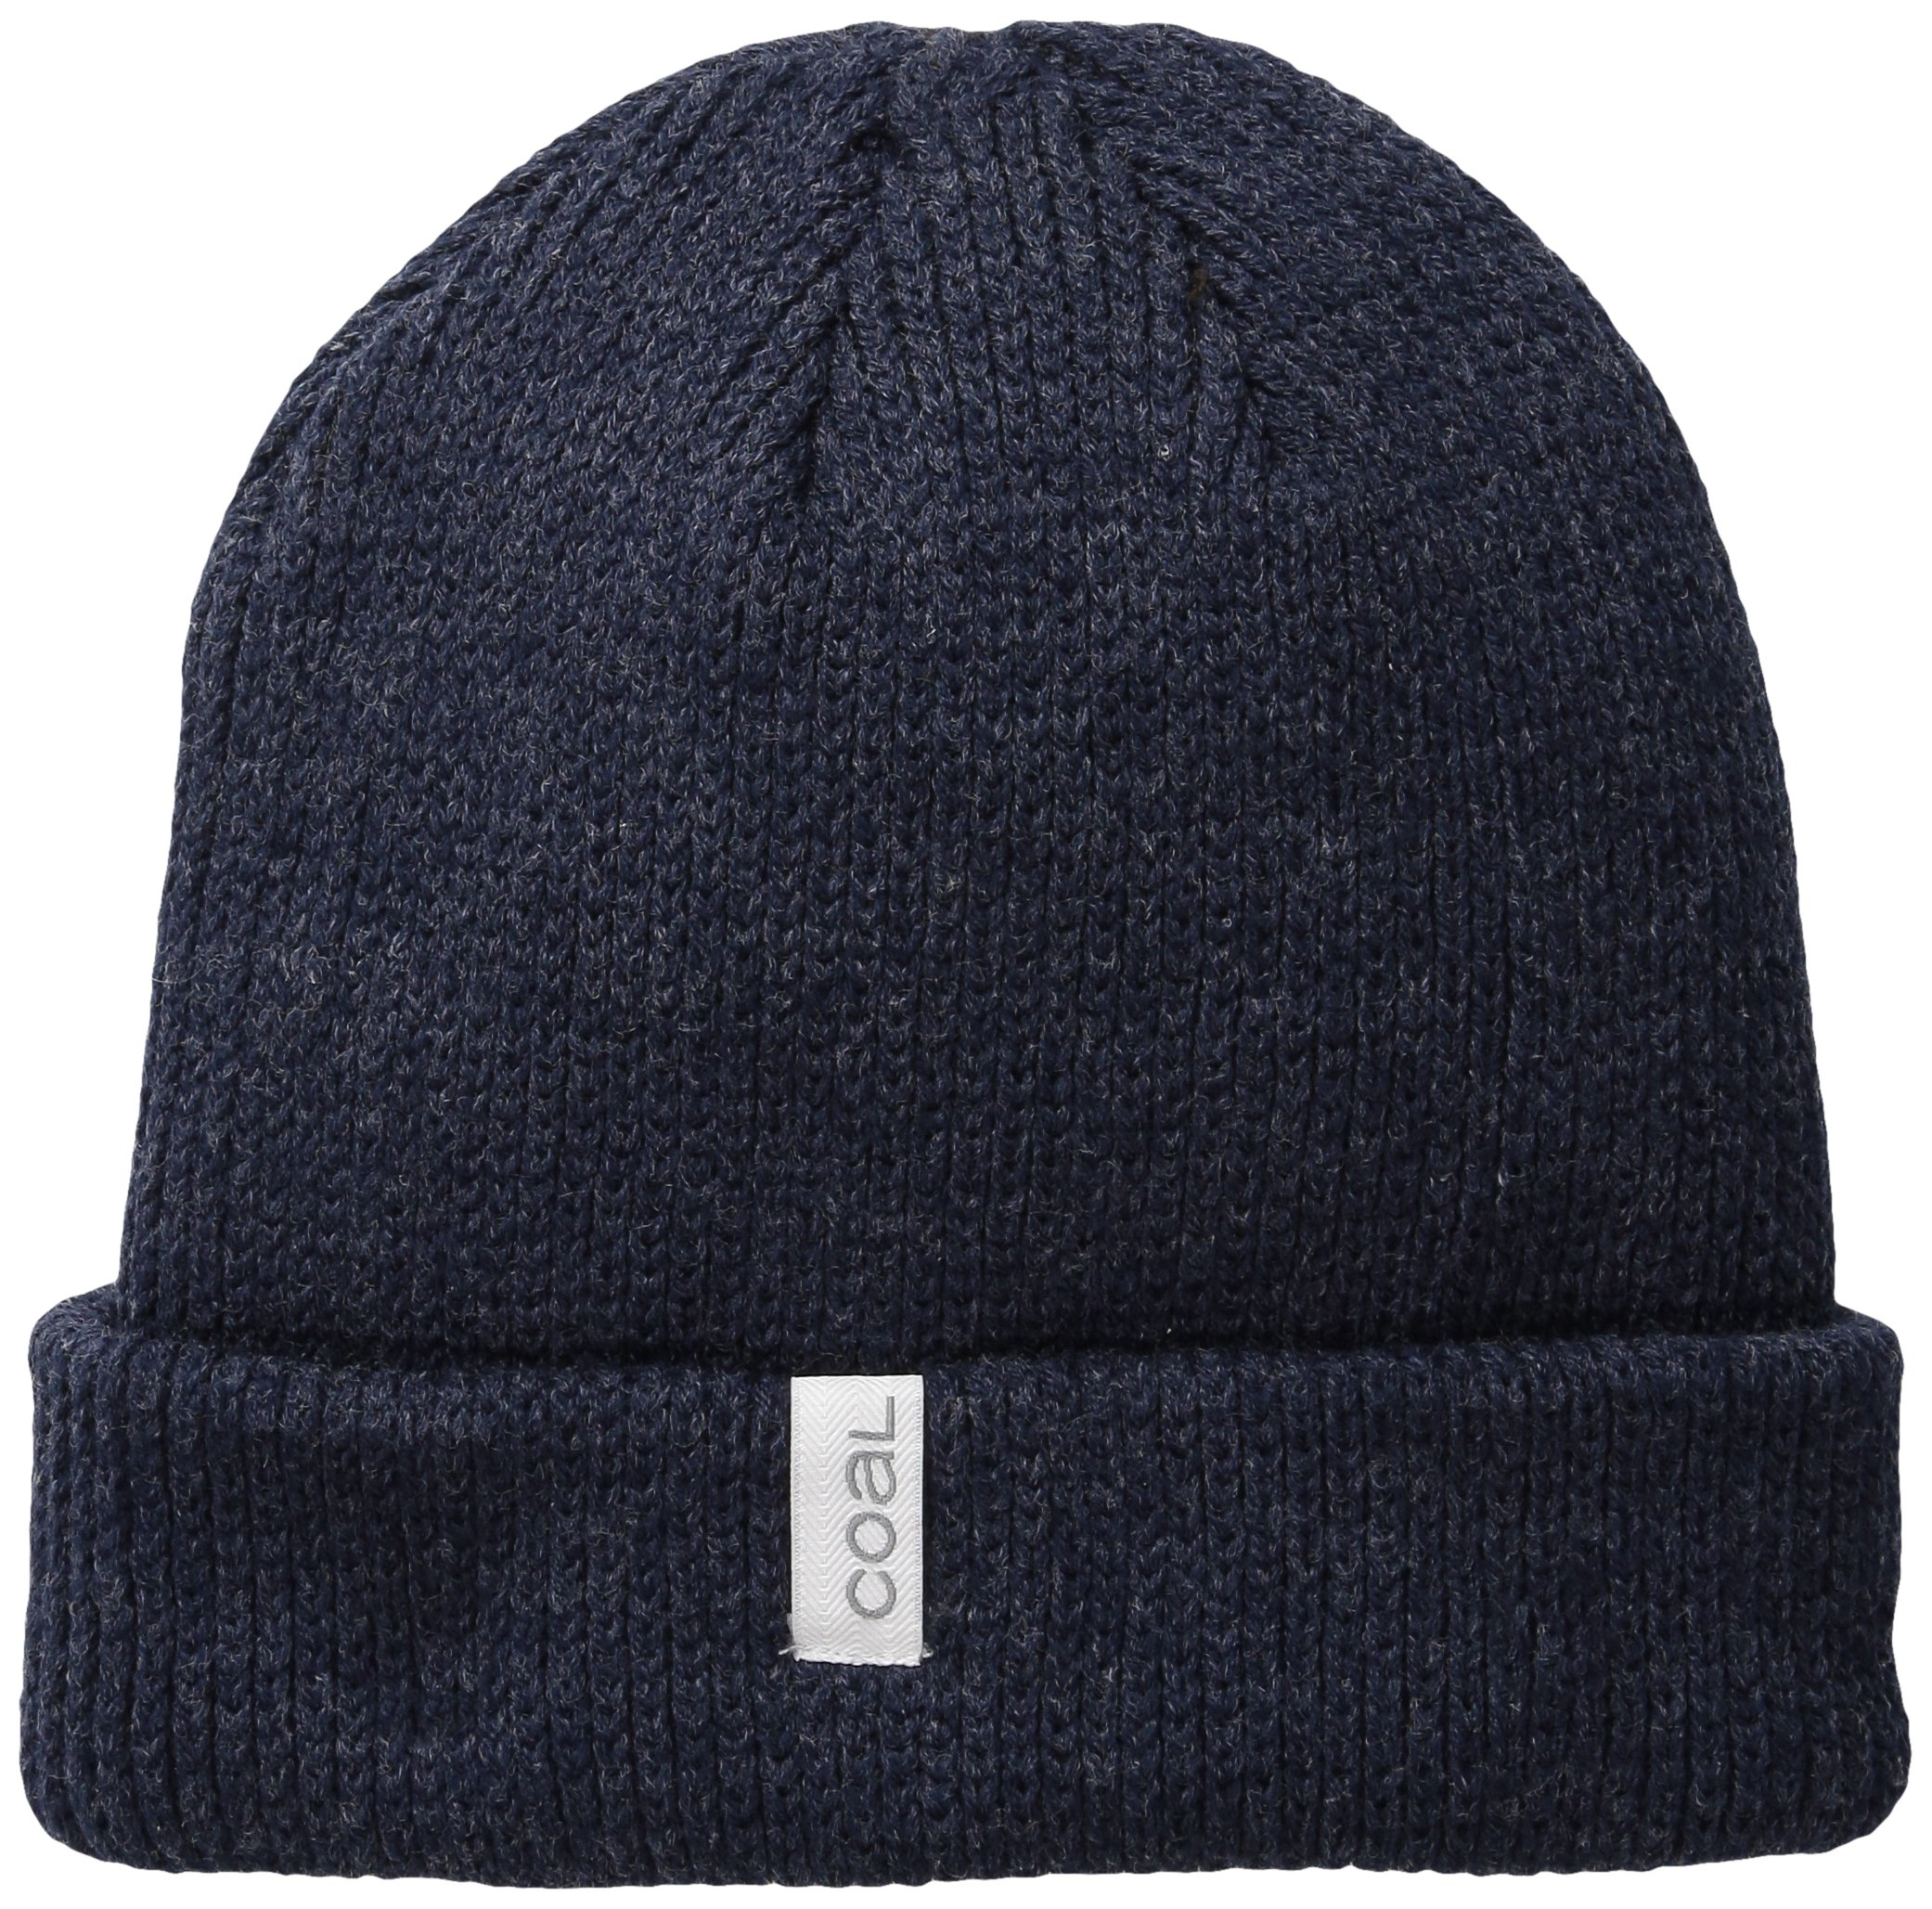 Coal The Frena Solid Fine Knit Beanie Hat,Heather Navy,One Size